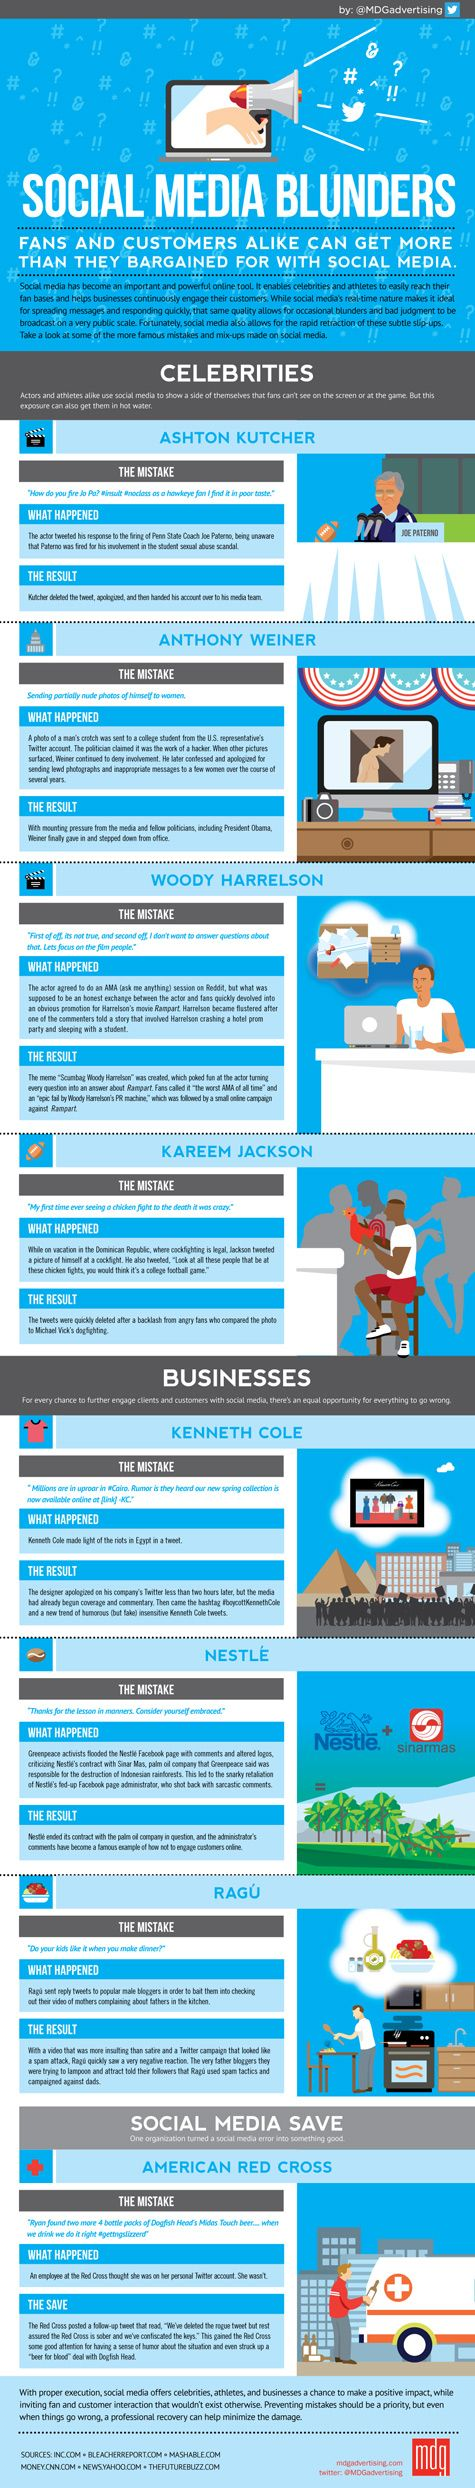 Social Media Blunders #Infographic - As the popularity of social media continues to accelerate, it's no surprise that famous faces and well-known brands are increasingly using these platforms to reach the people responsible for their fame. The power of these social media channels allows actors, comedians, athletes, and companies to interact with their followers, yet the casual comfort of these conversations can sometimes result in social slip-ups. #SocialMedia